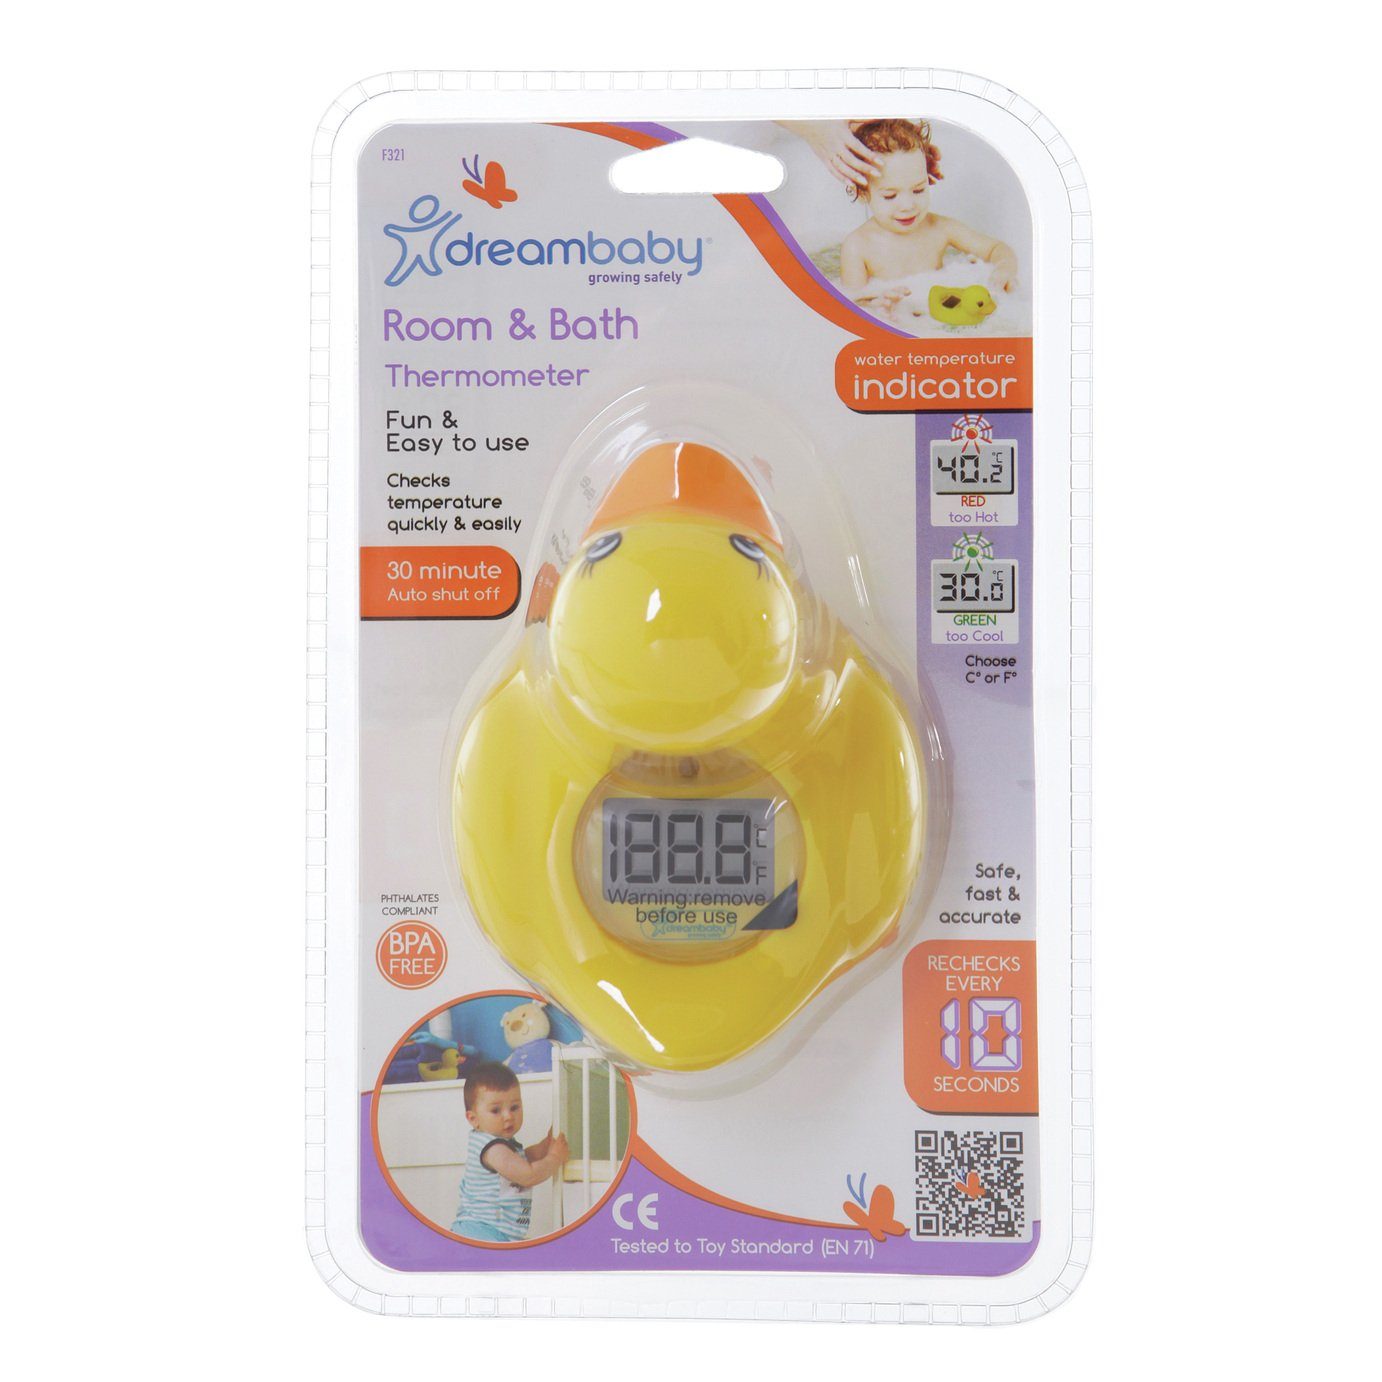 Dreambaby 2 in 1 Digital Bath and Room Thermometer - Duck